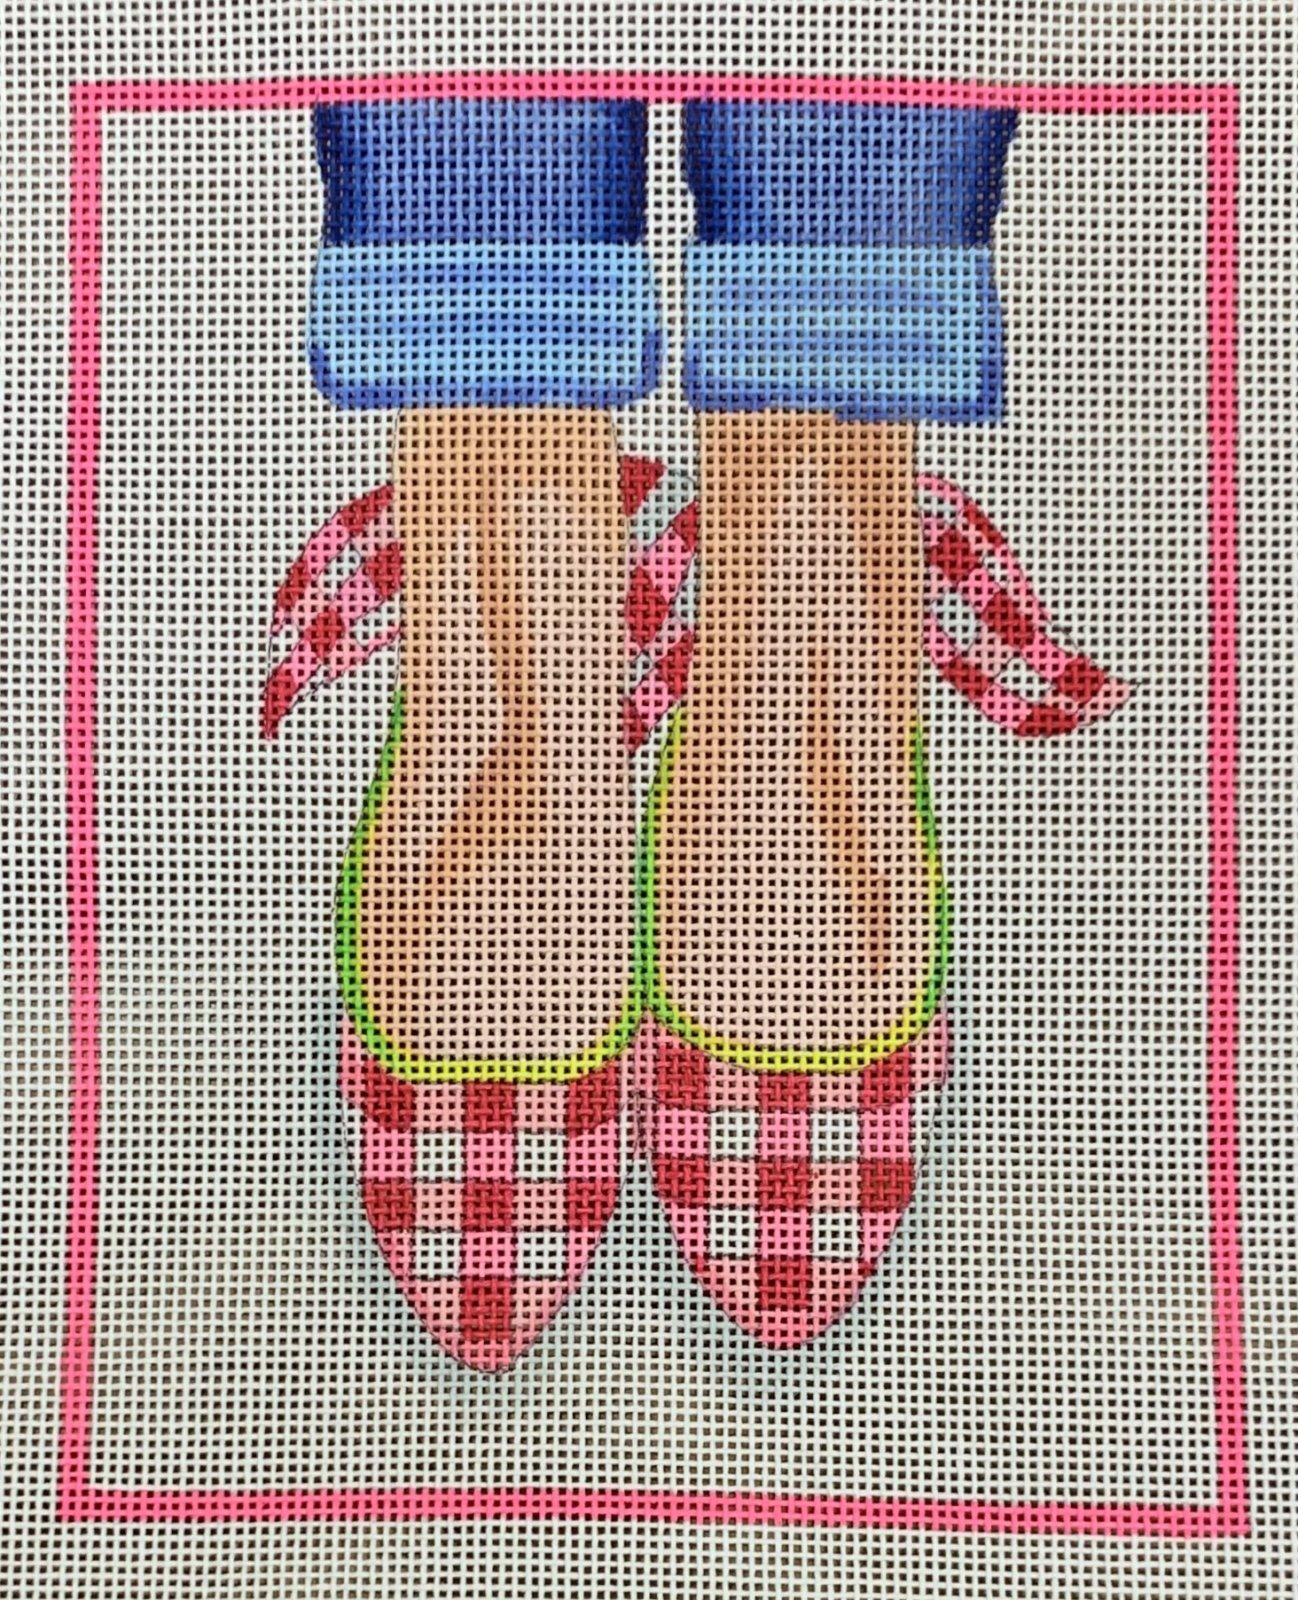 Here's Looking at Shoe - Gingham Wedges w/Bows on the Backs